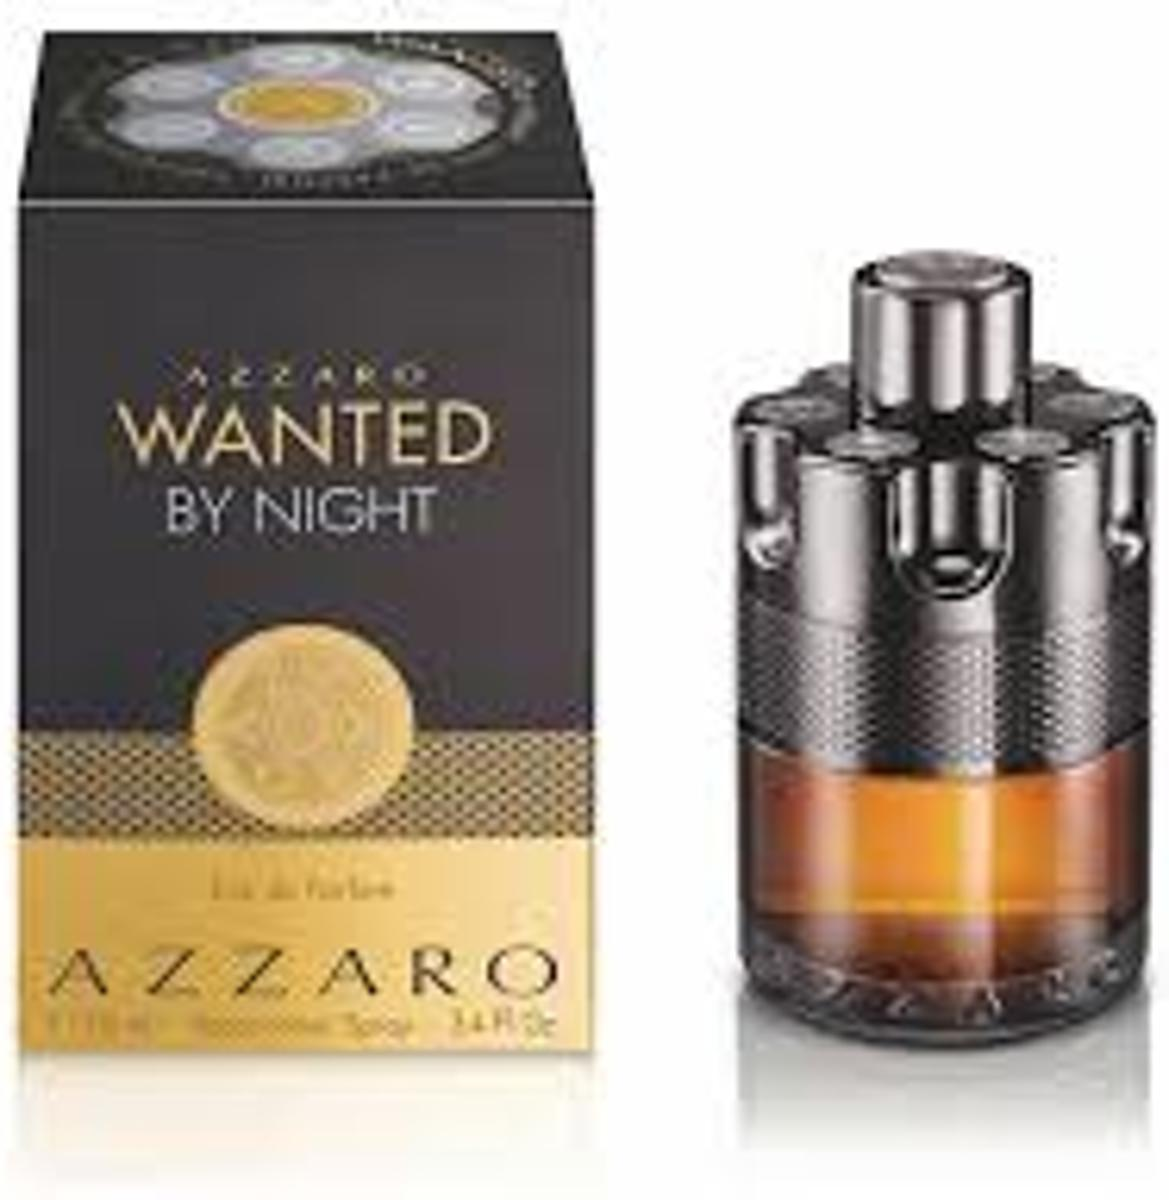 Azzaro Wanted By Night Edp Spray 100ml